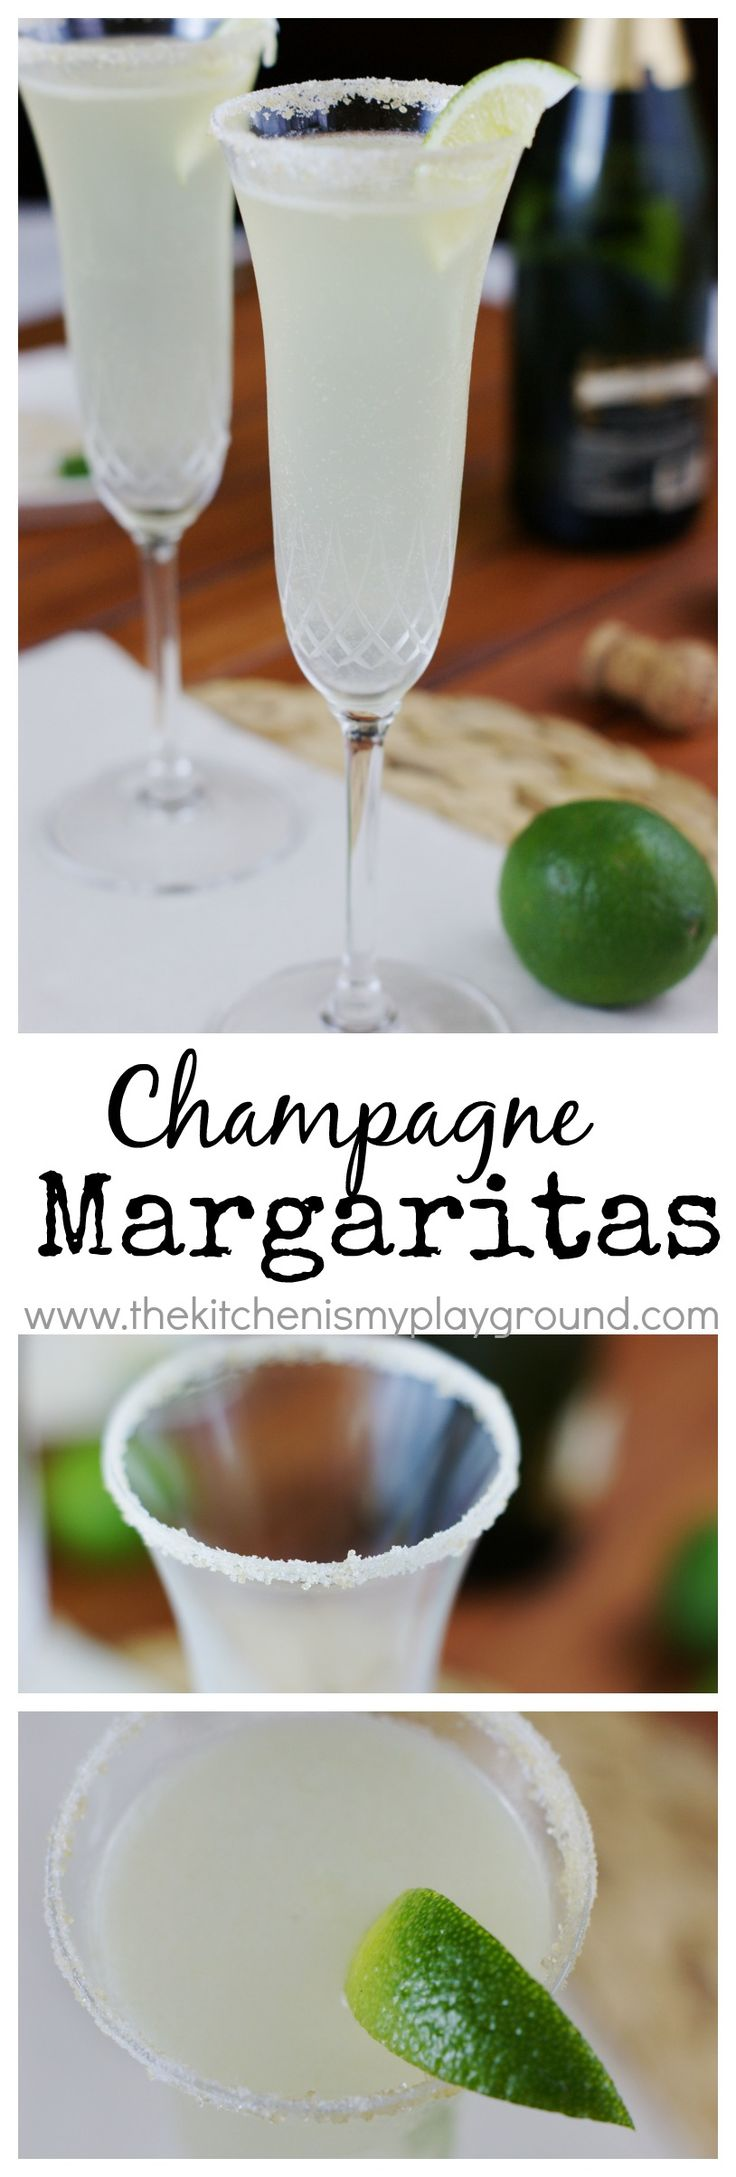 Champagne Margaritas ~ give your margaritas a delicious little champagne twist! www.thekitchenismyplayground.com: